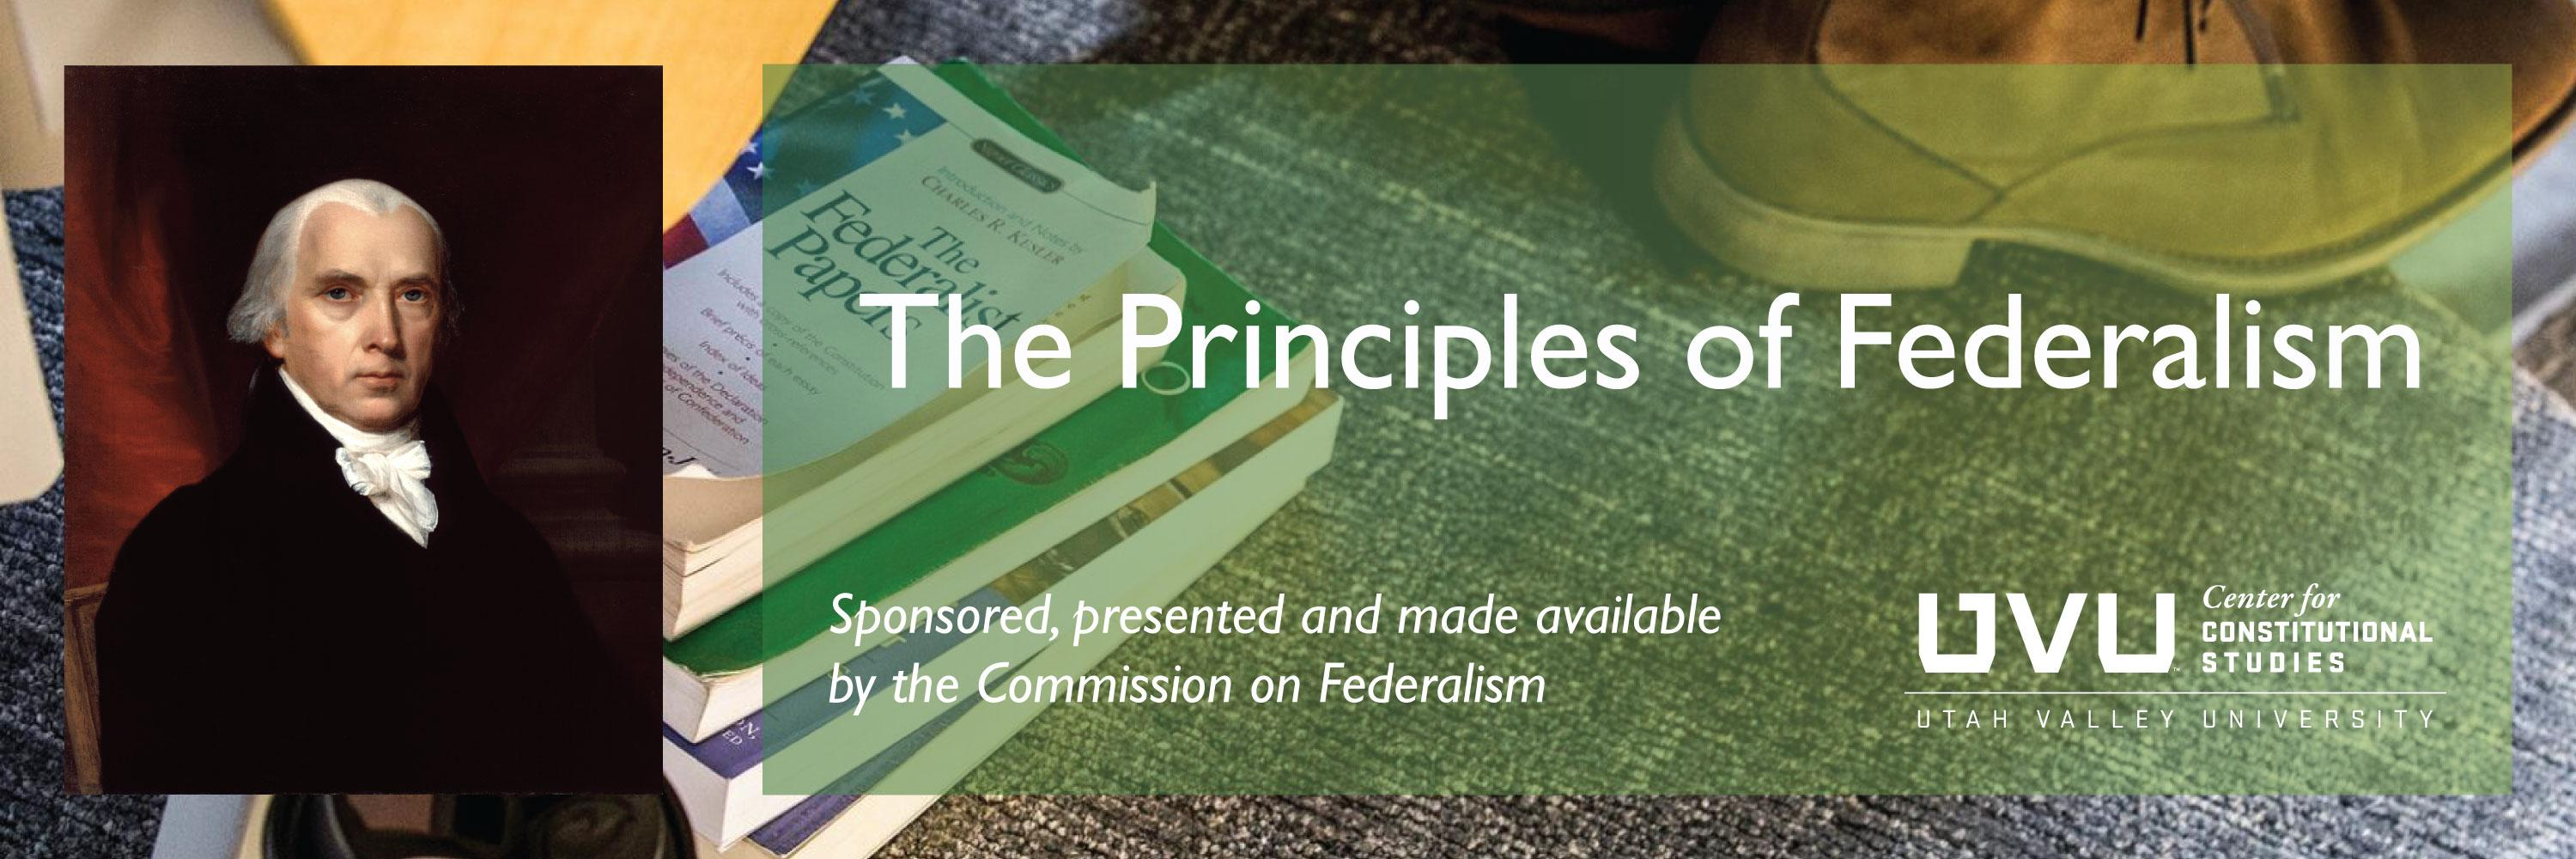 The Principles of Federalism